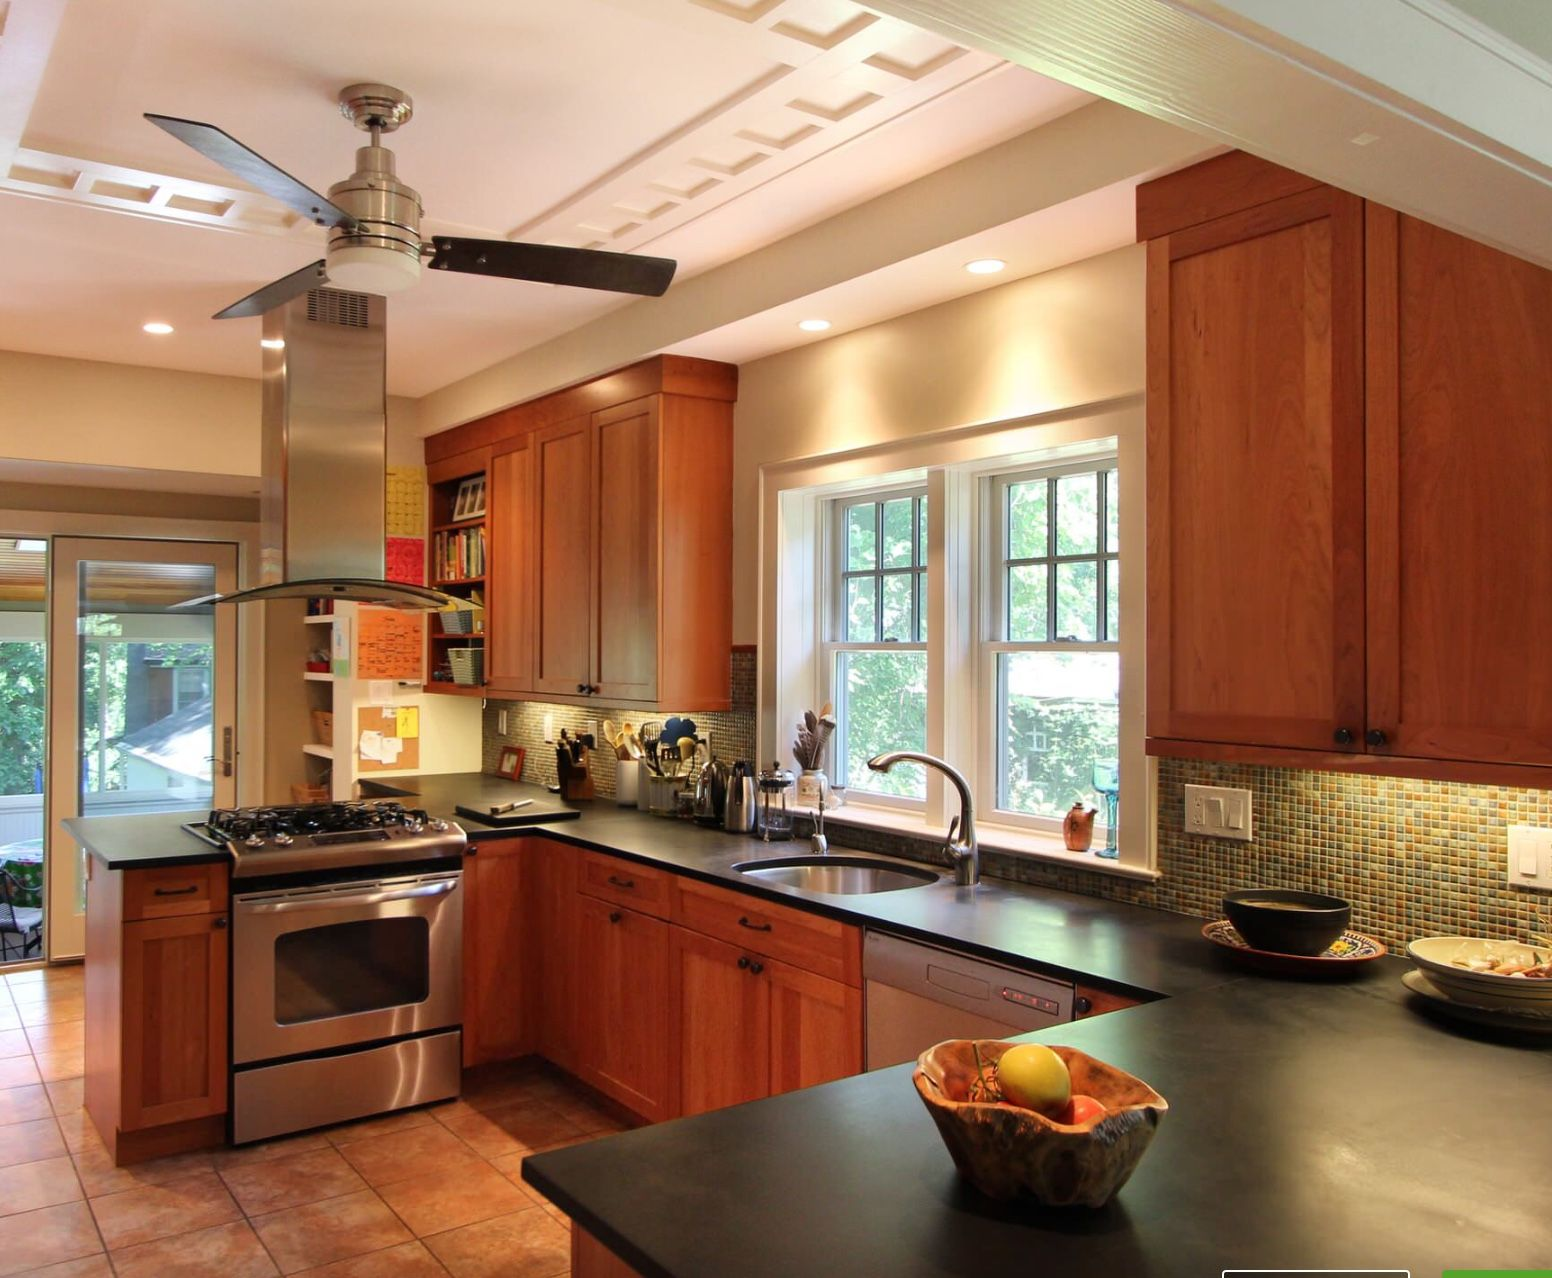 Cheery Cabinets With Black Counter Small U Shaped Kitchens Ceiling Fan In Kitchen Elegant Kitchens